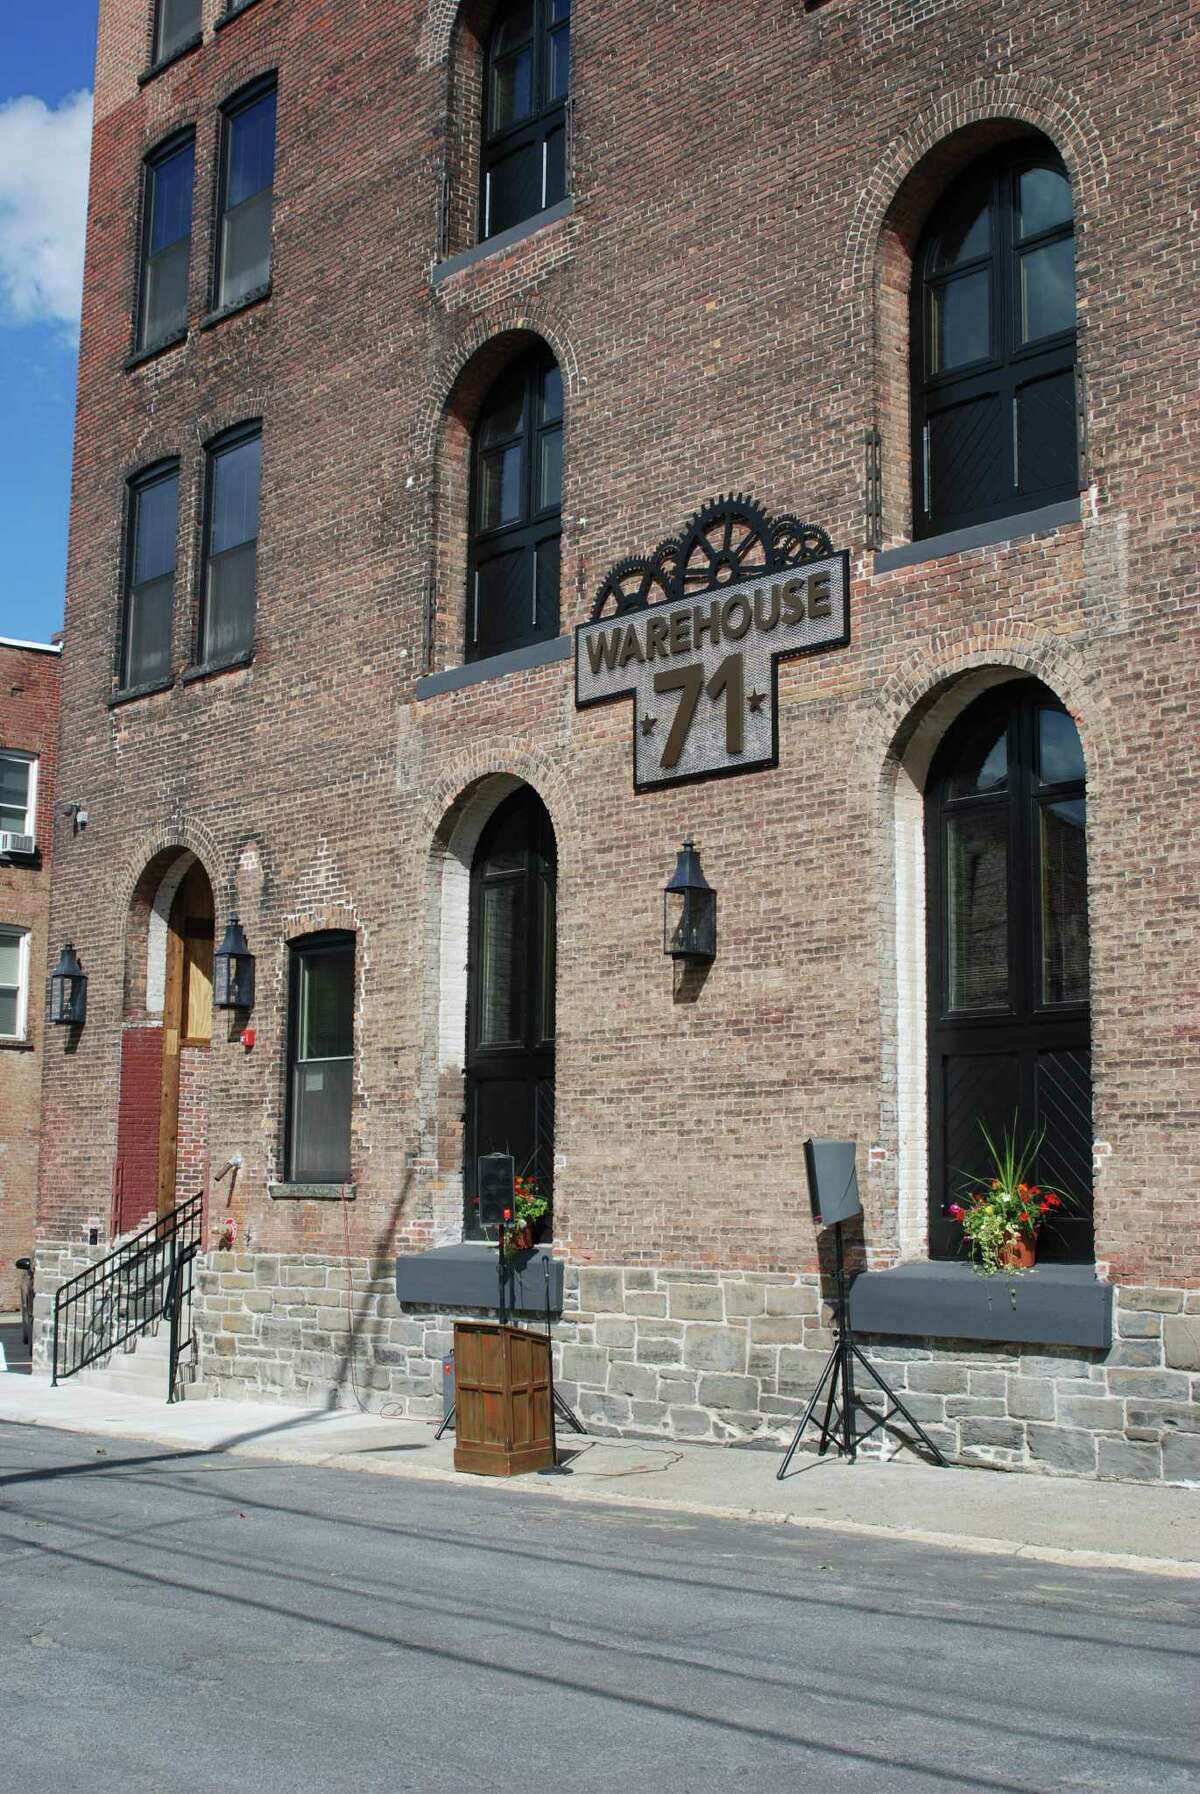 Warehouse 71 , luxury loft-style apartments from $1,220 to $1,720. 71 Canvass Street, Cohoes, NY 12047. Open Saturday, September 12, 2015 from 11:00 a.m. to 2:00 p.m. Call 518-640-4080 orvisit web site to learn more.